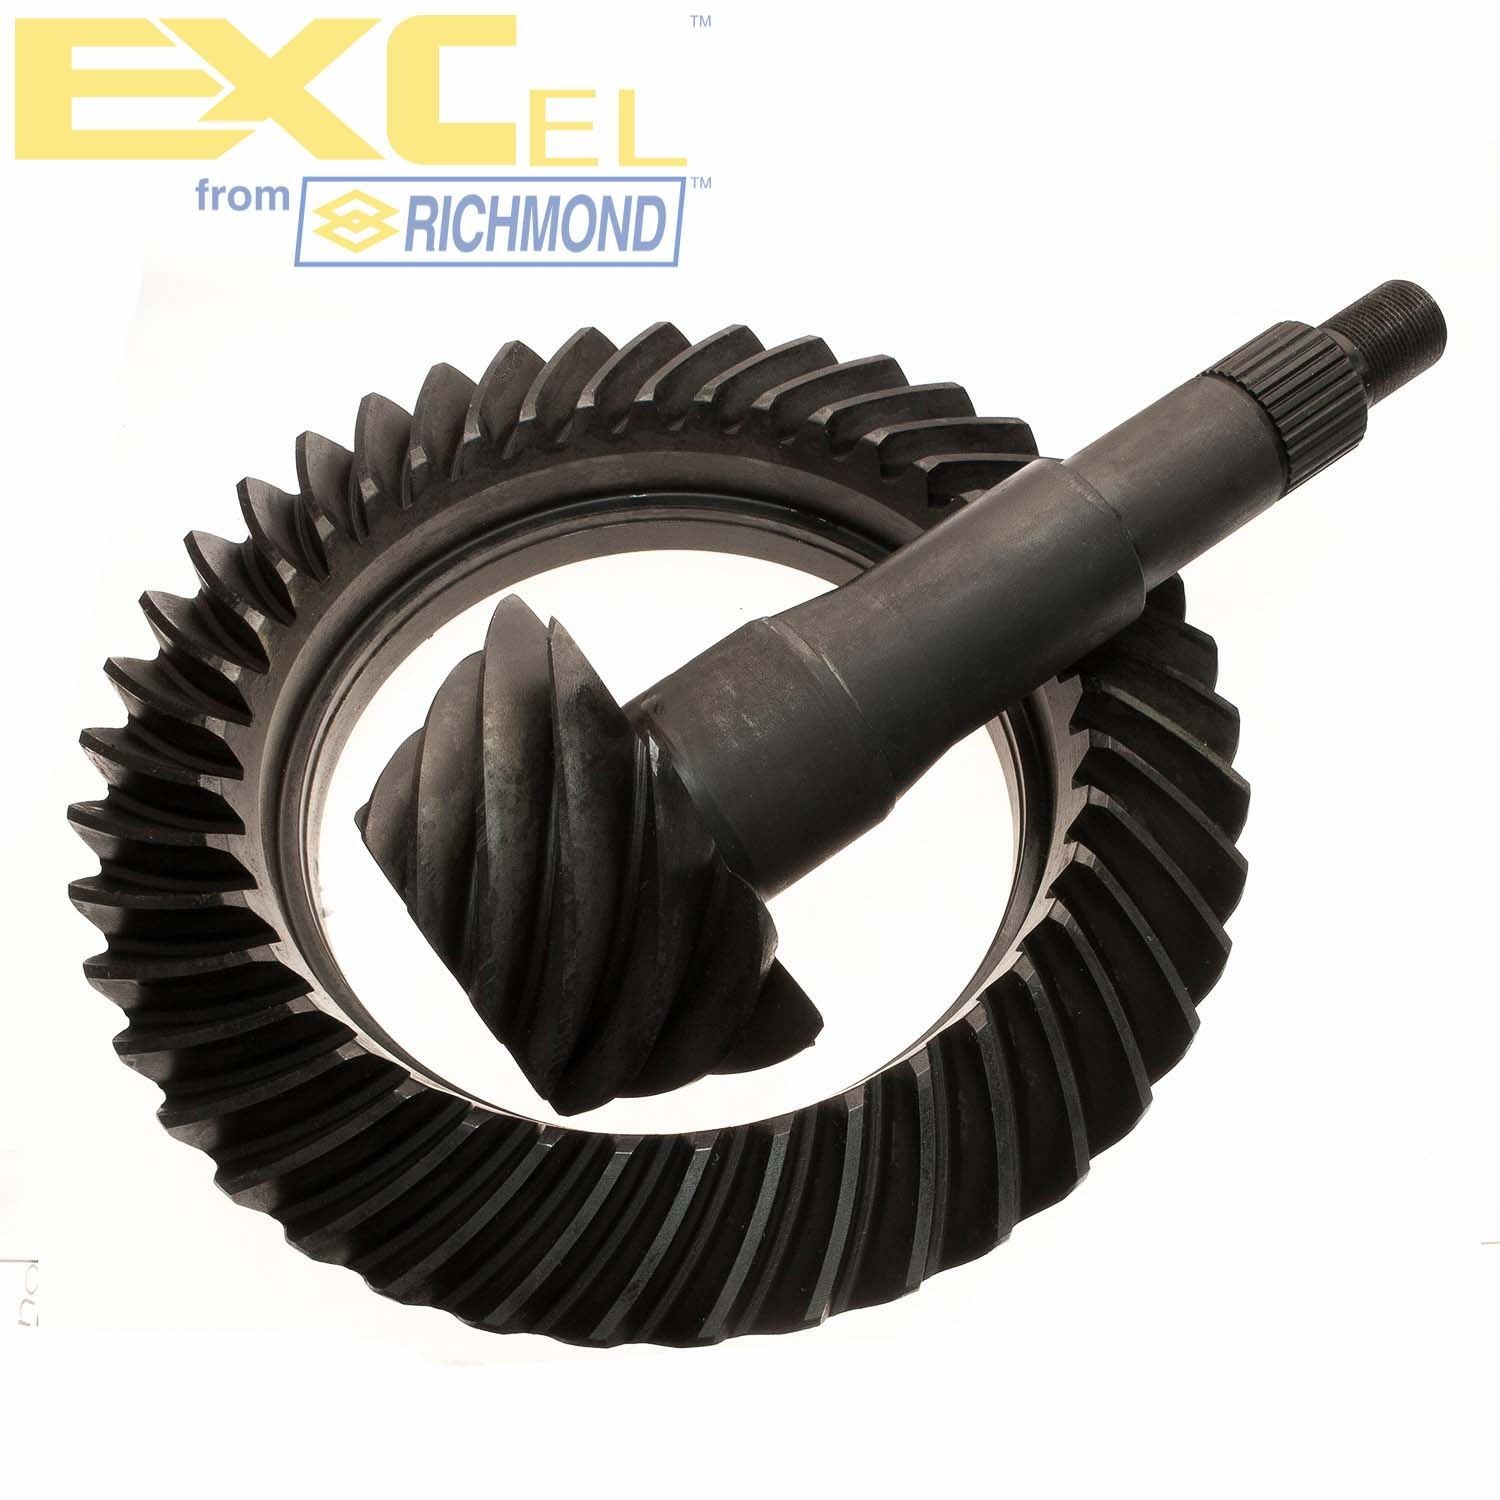 EXCEL from Richmond F10355 Differential Ring And Pinion